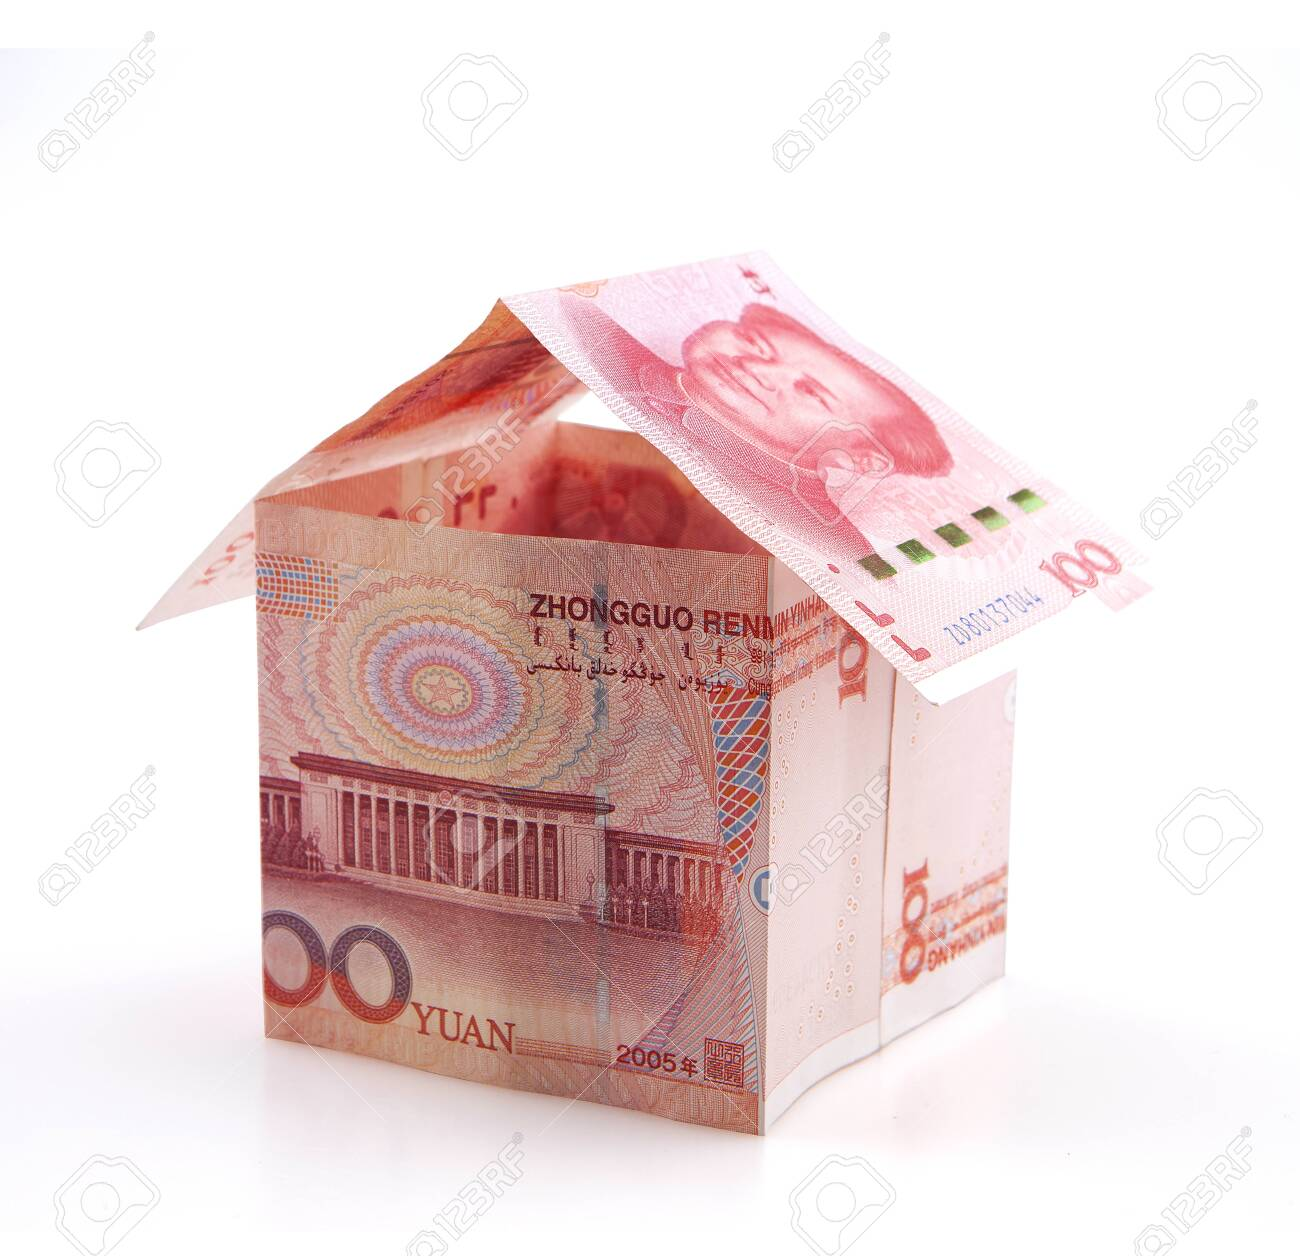 Small house of banknotes - 148147173